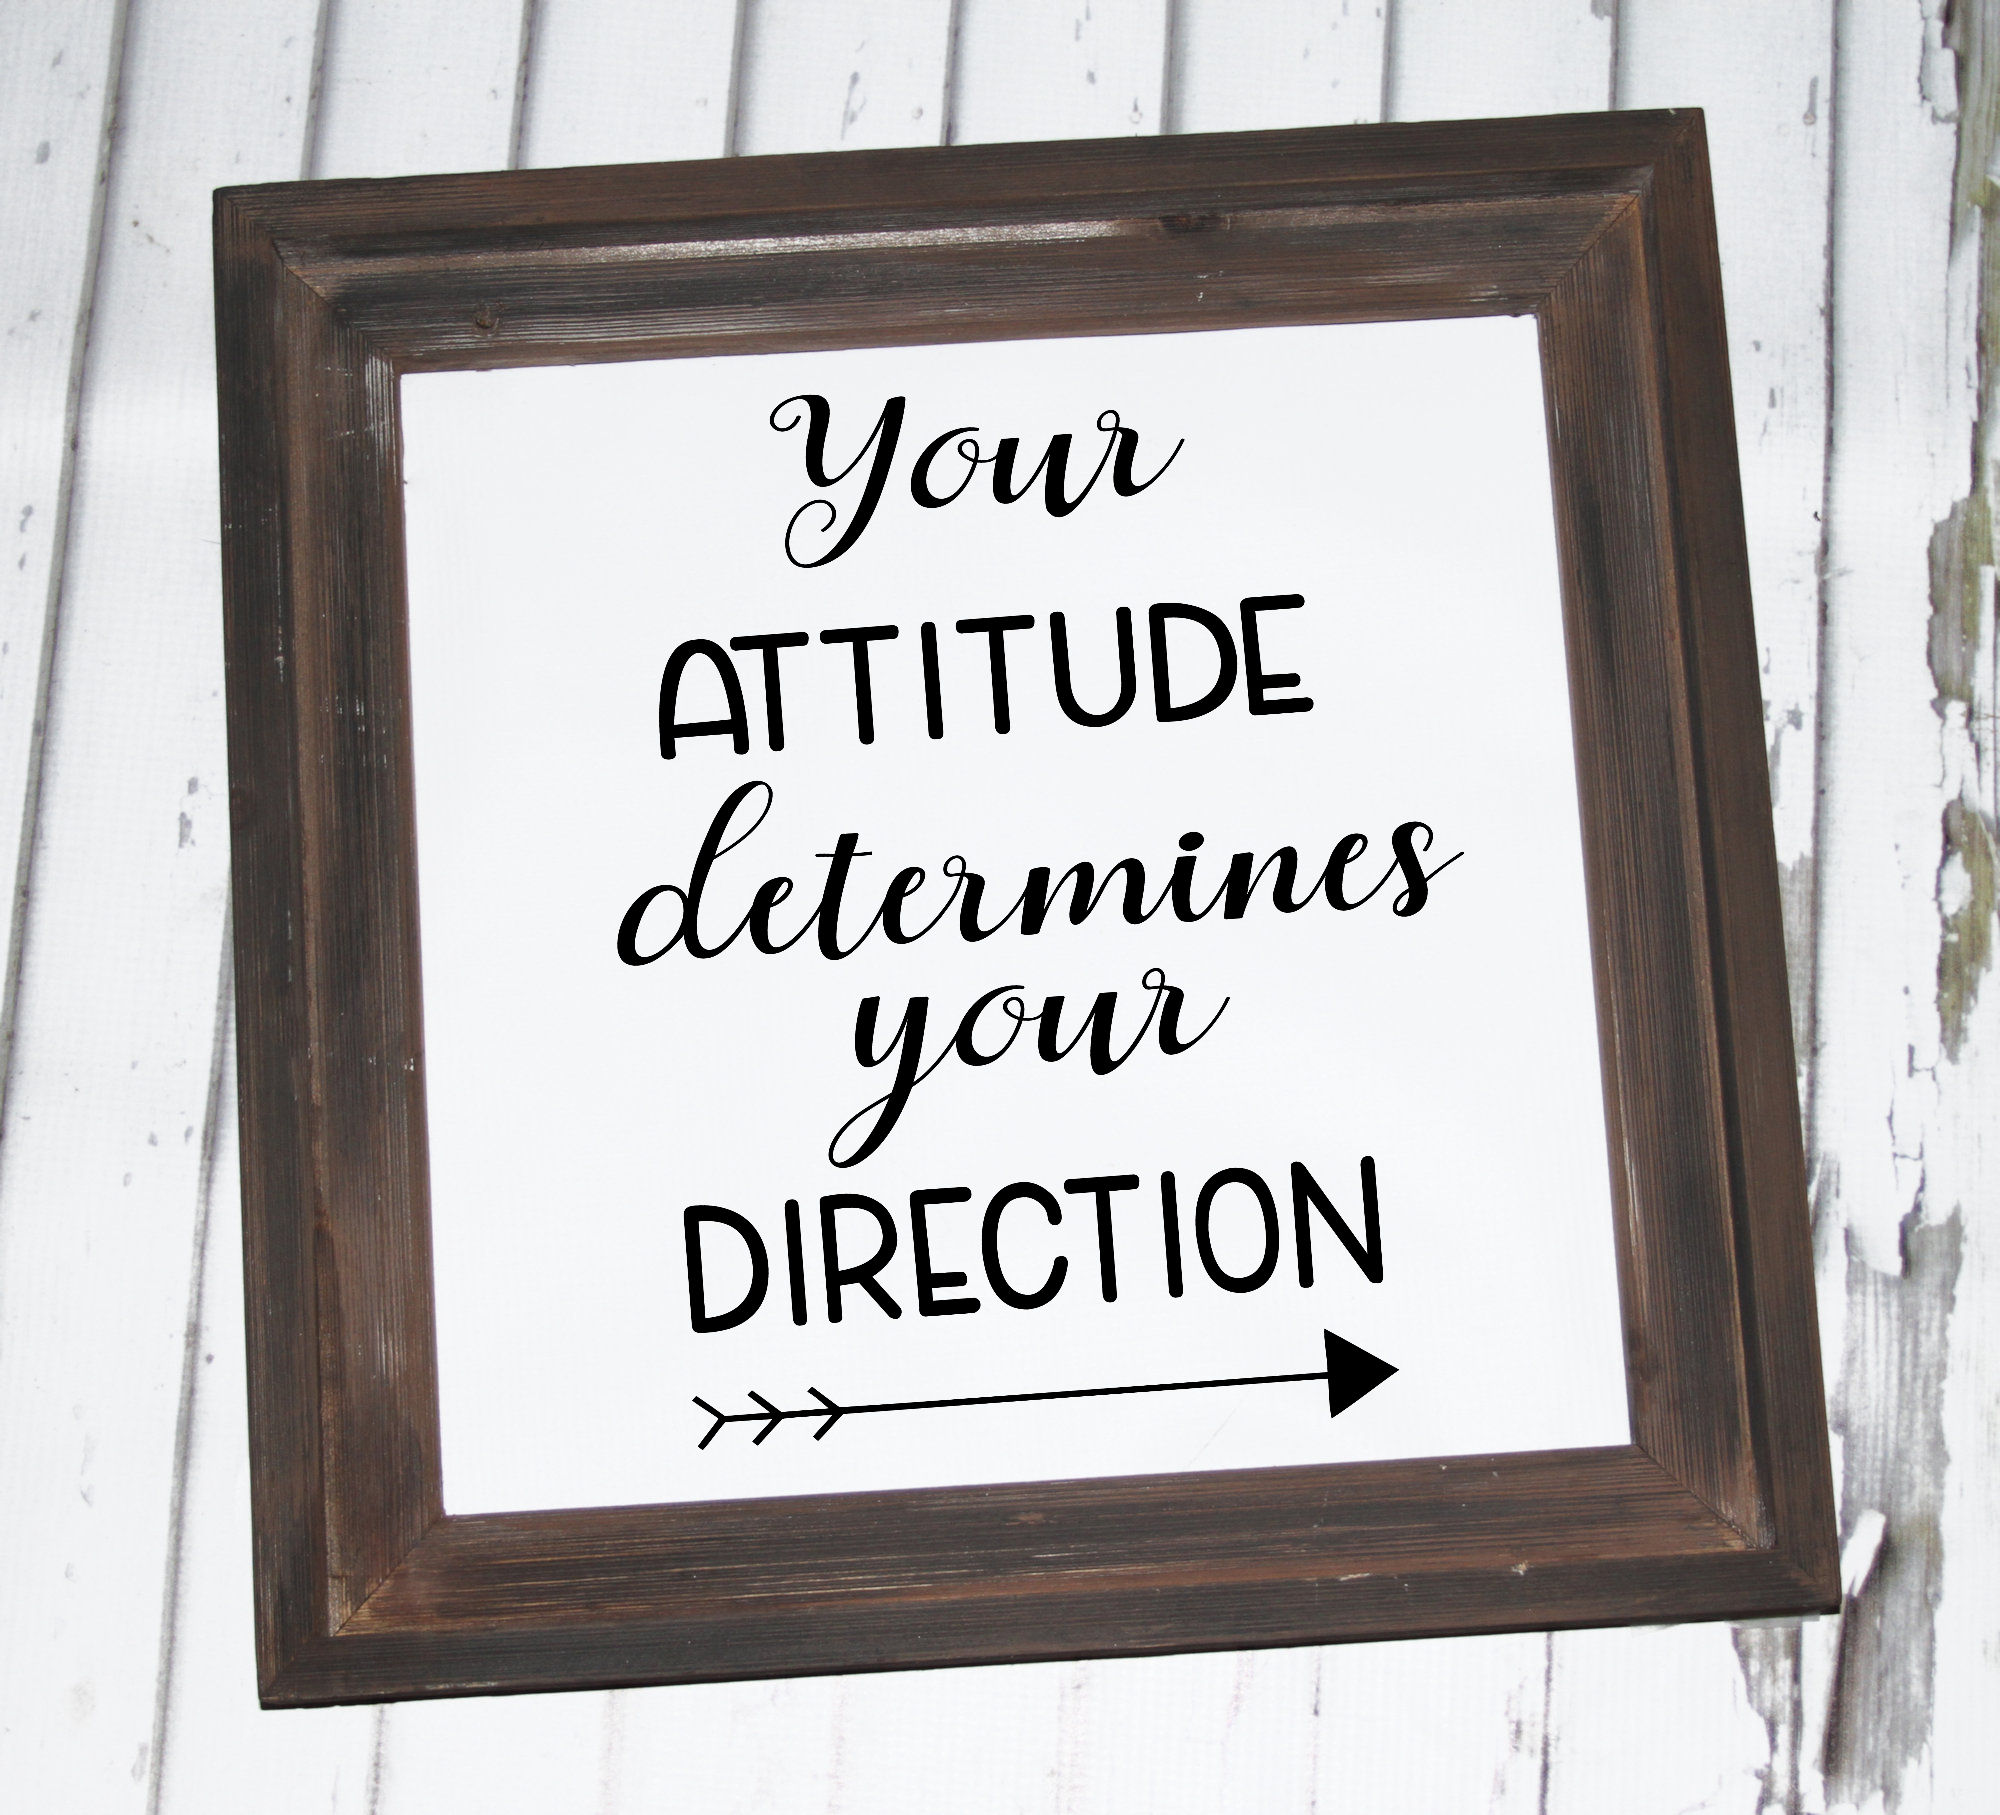 Inspirational SVG - Your attitude determines your direction example image 2